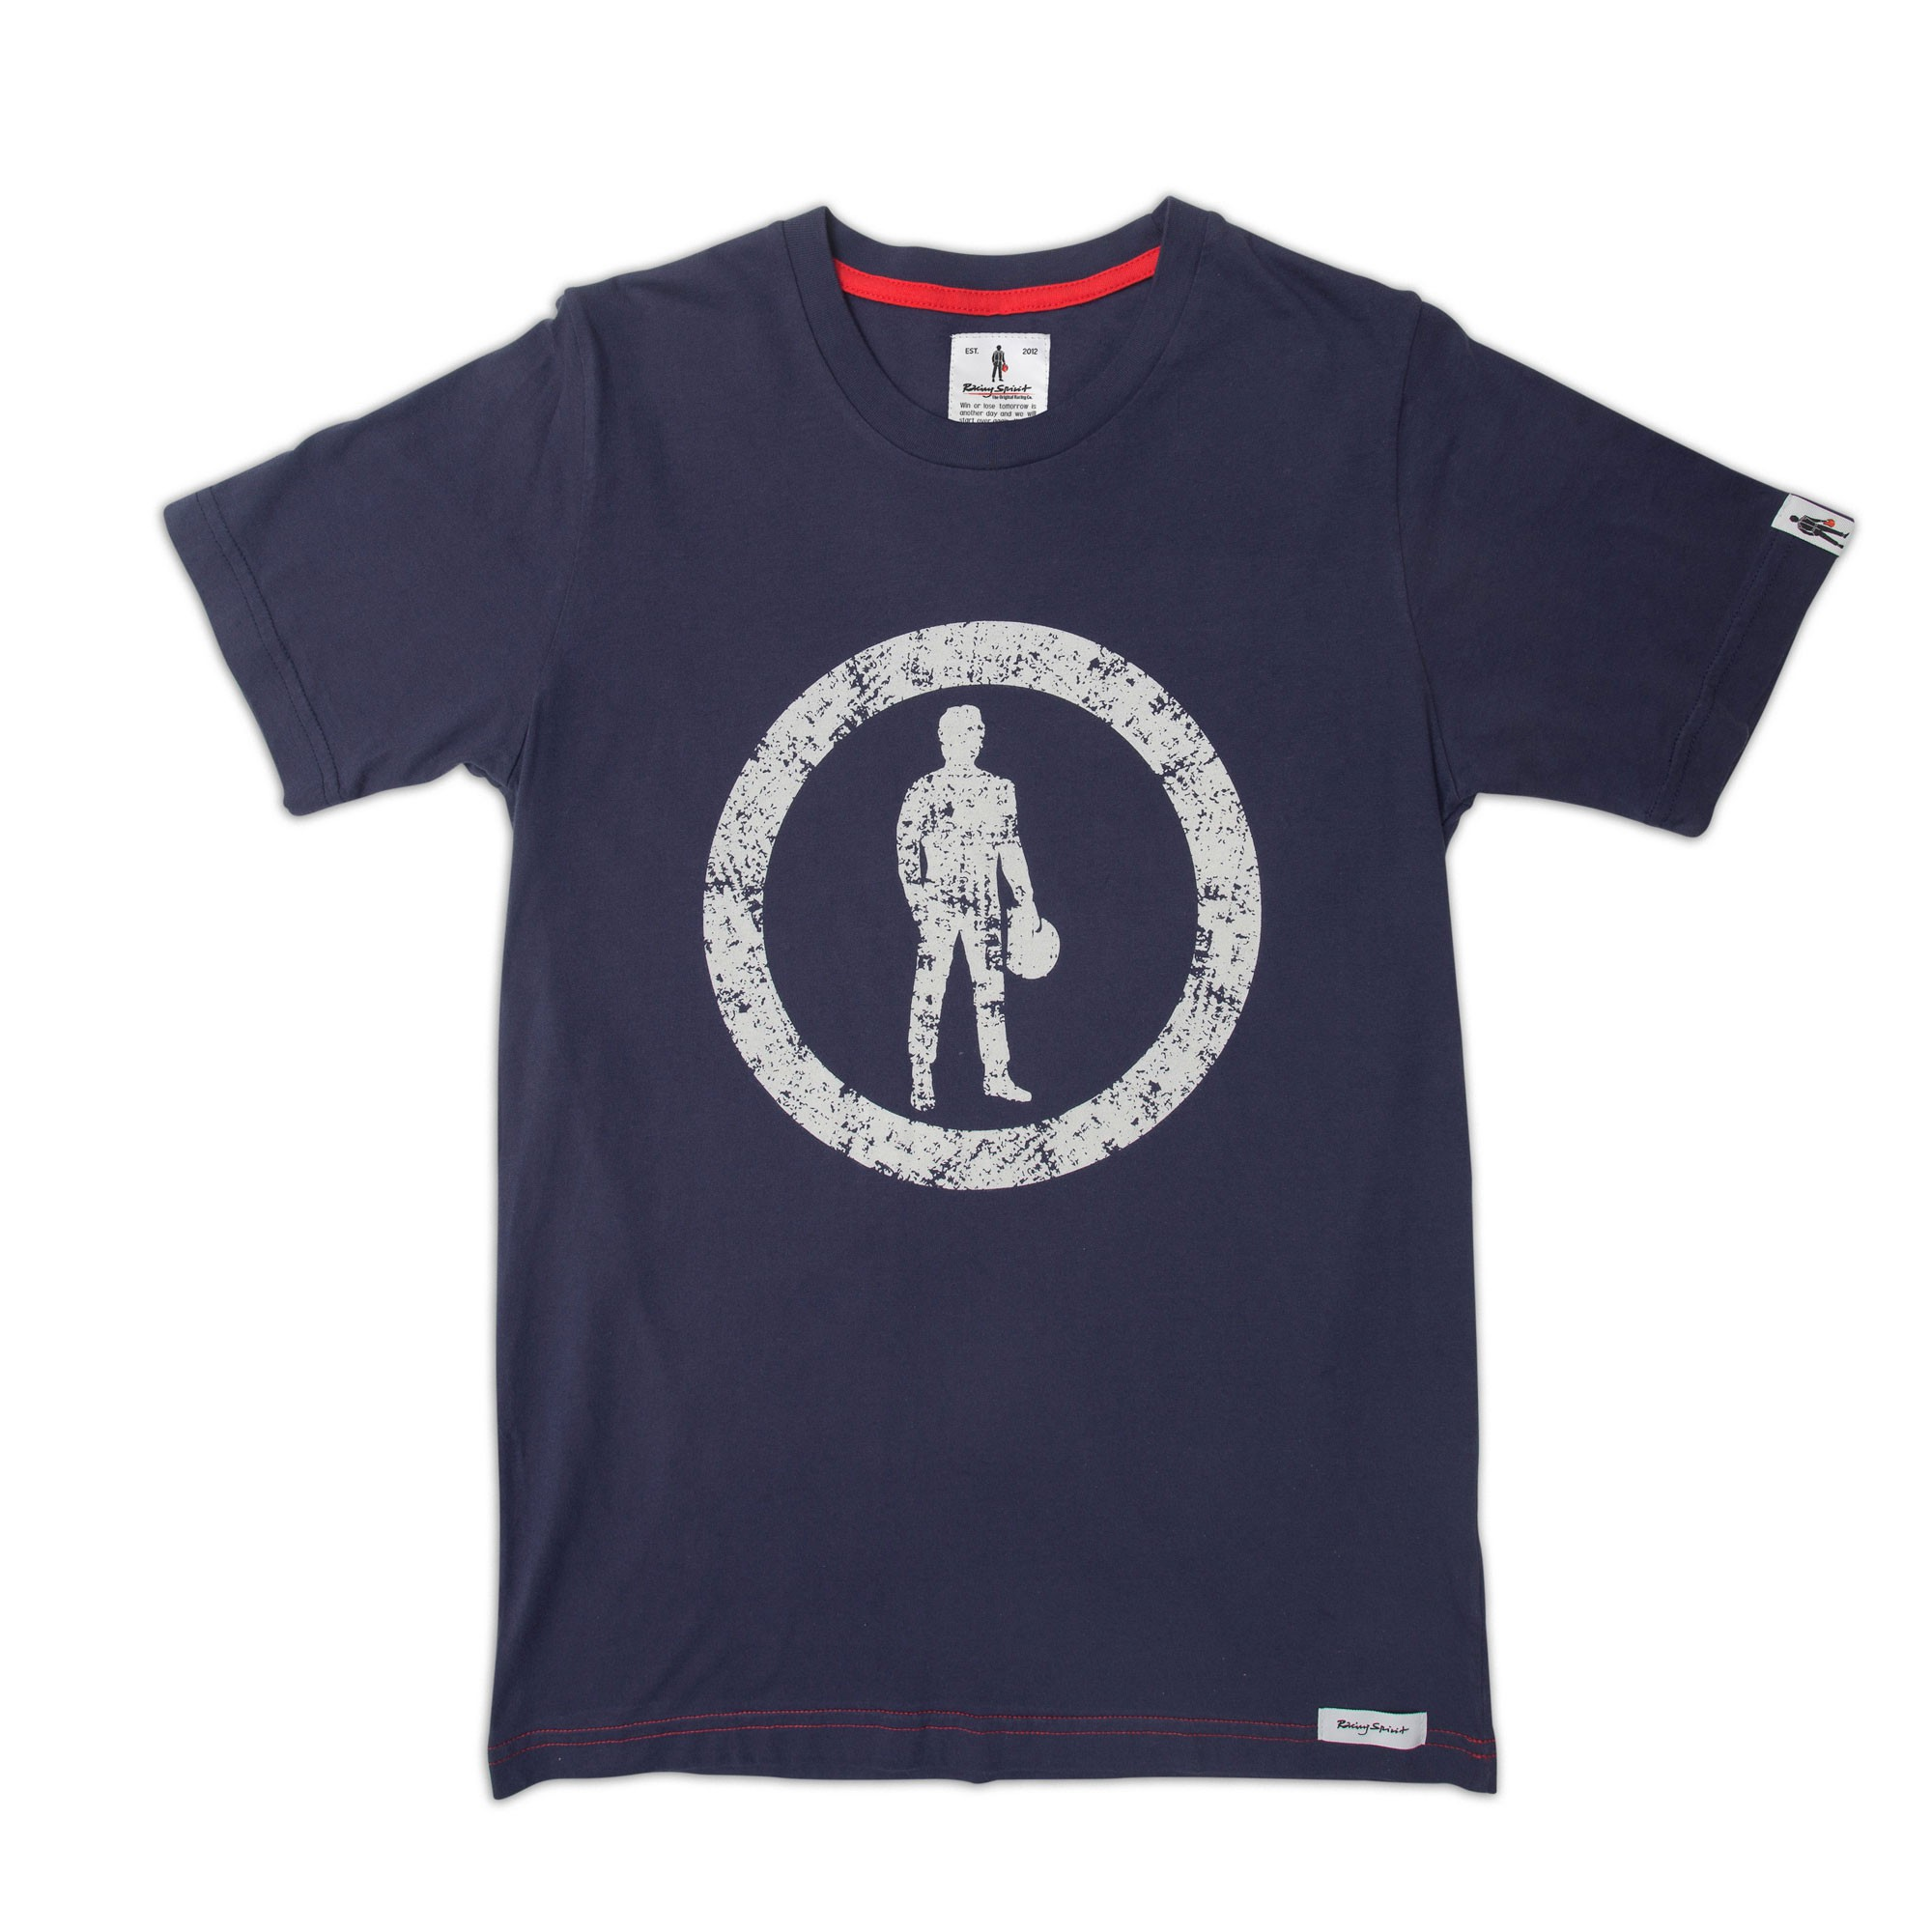 Icon in Circle Tee